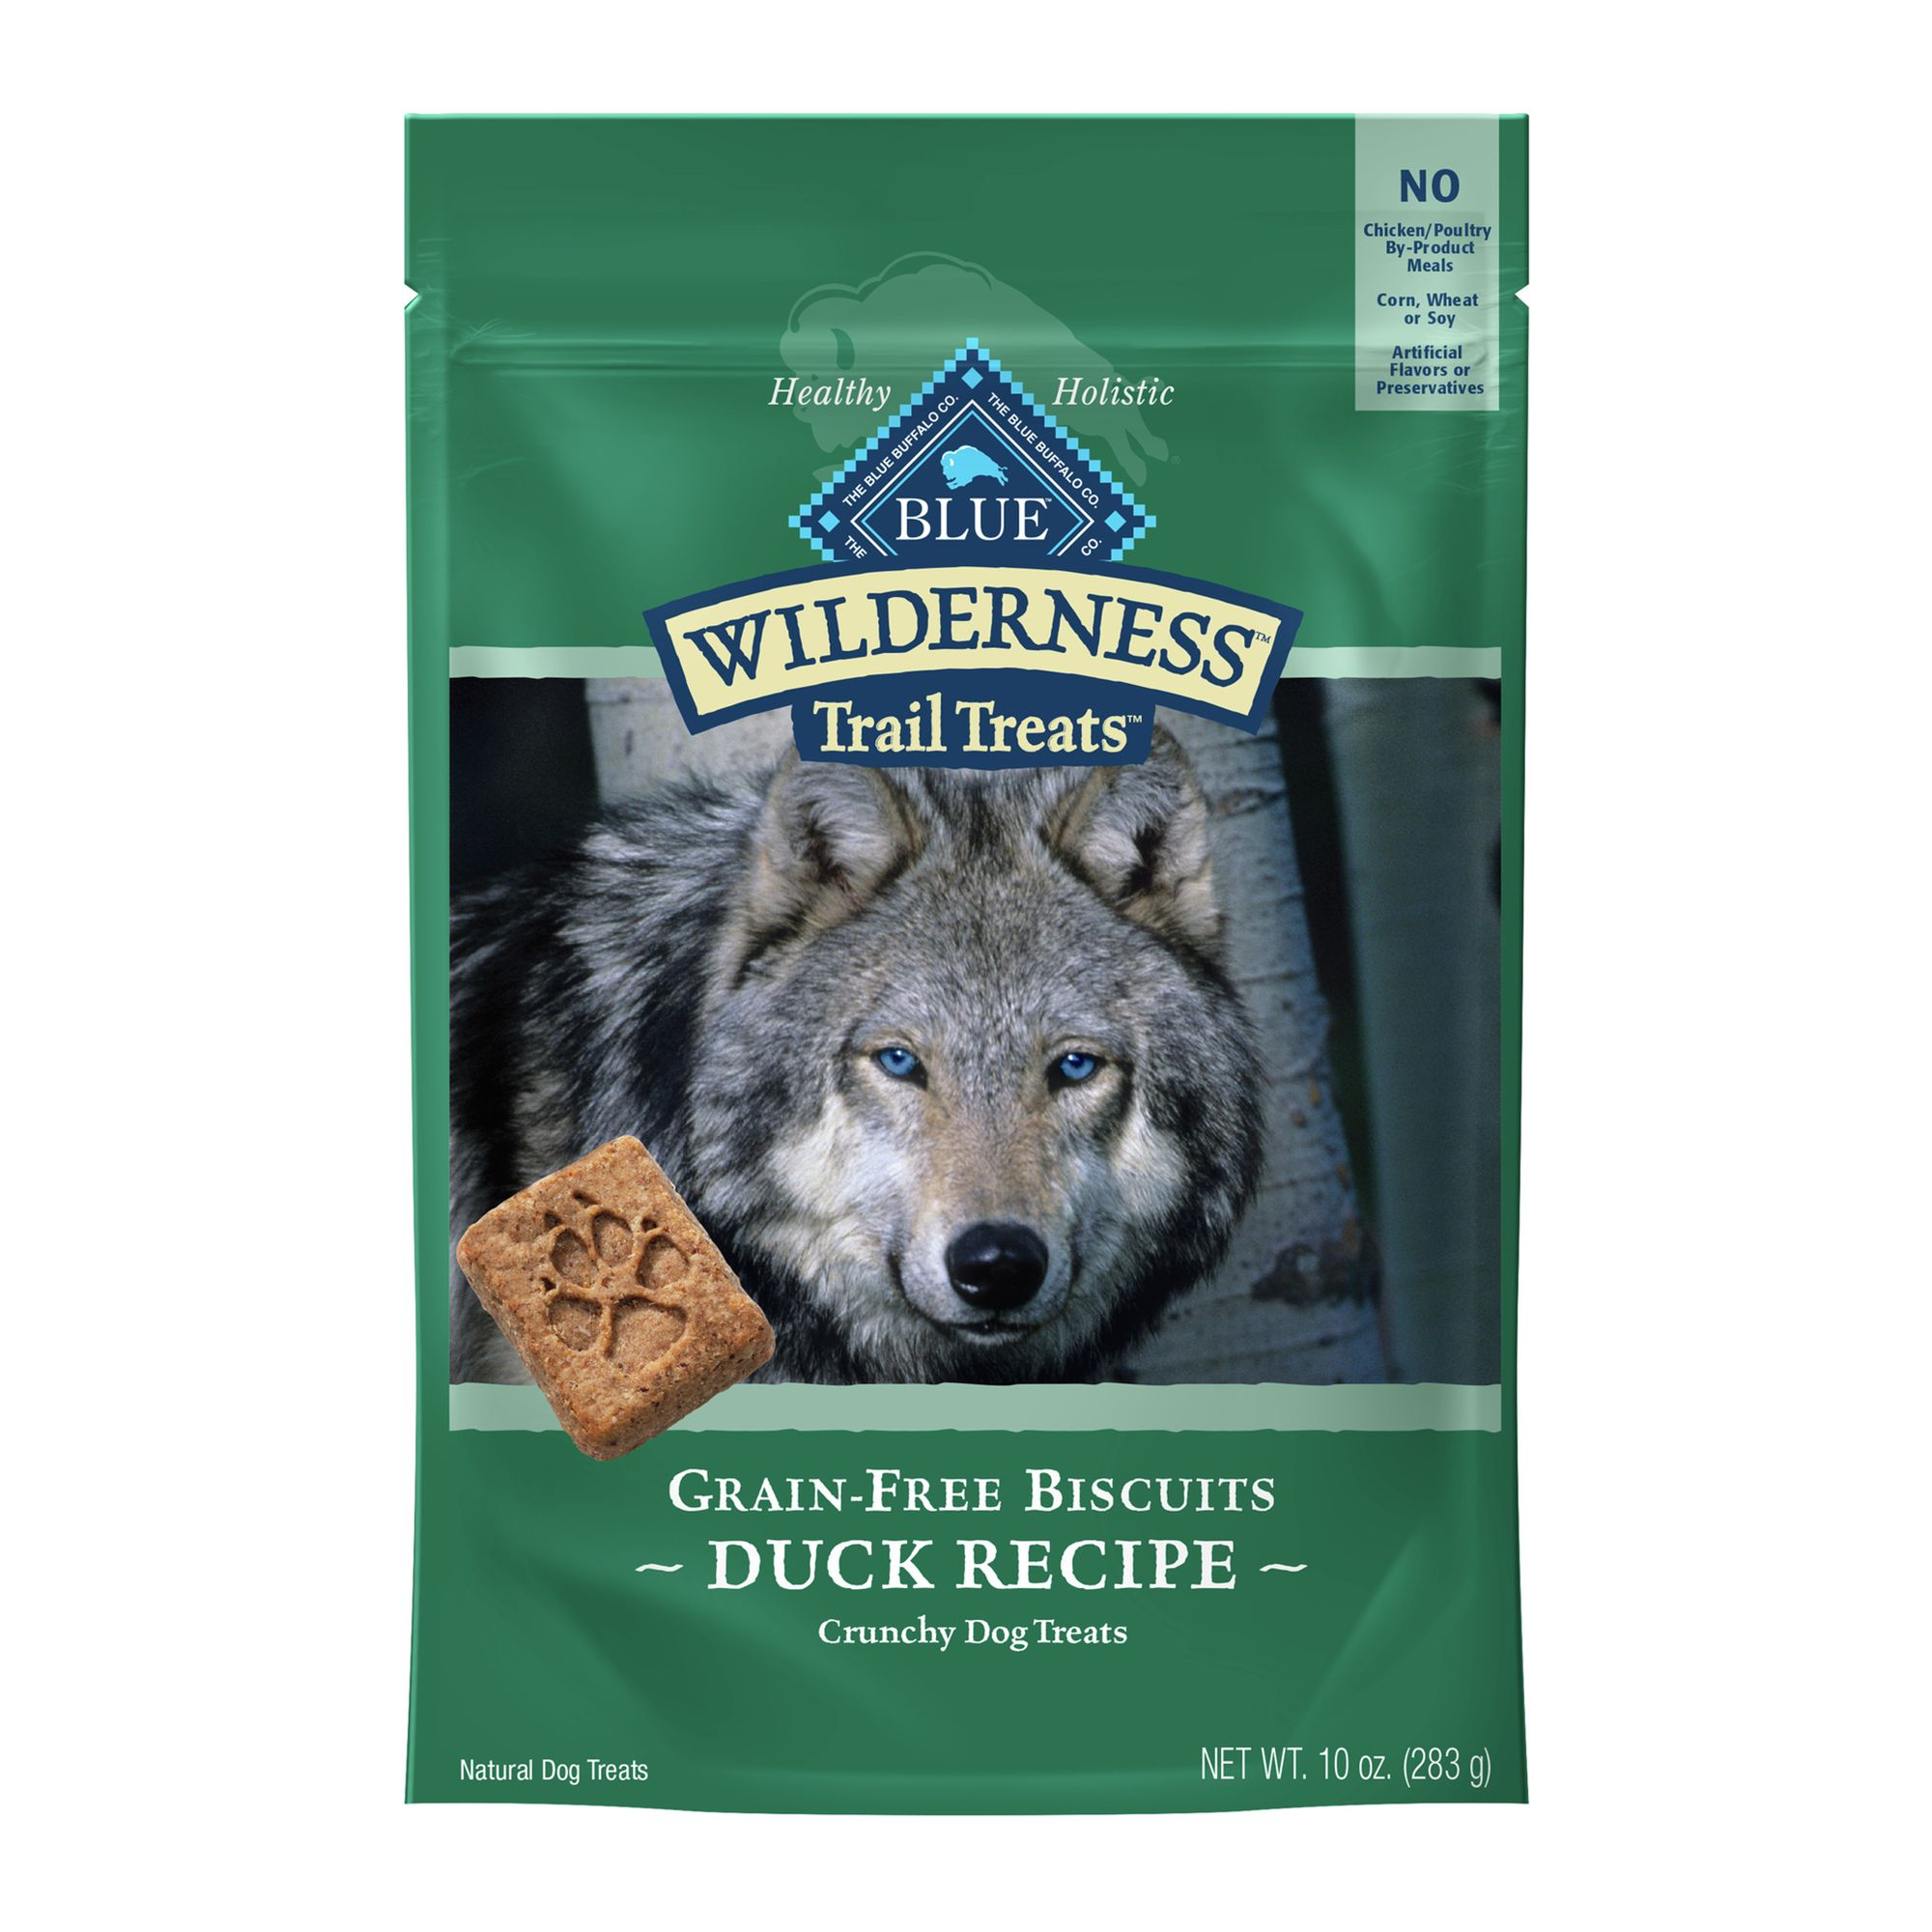 Blue Wilderness Trail Treats Grain Free Dog Treat size: 10 Oz, Blue Buffalo, Duck, Adult